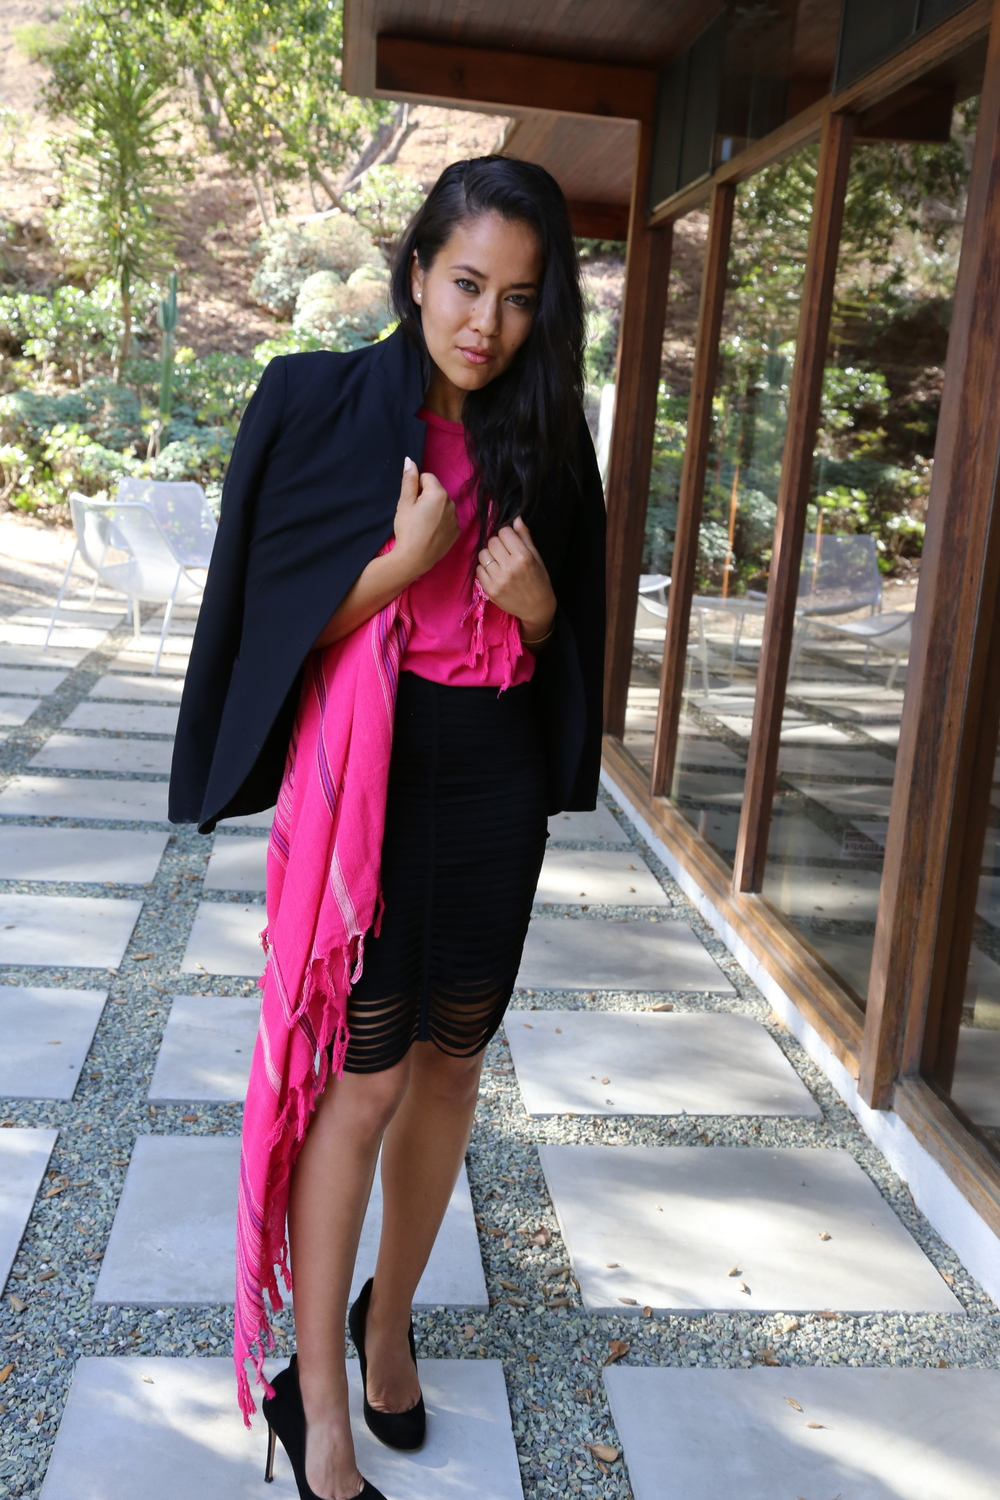 zara-blazer-alexander-wang-pencil-skirt-black-pumps-isabel-marant-pink-top-scarf-los-angeles.jpg